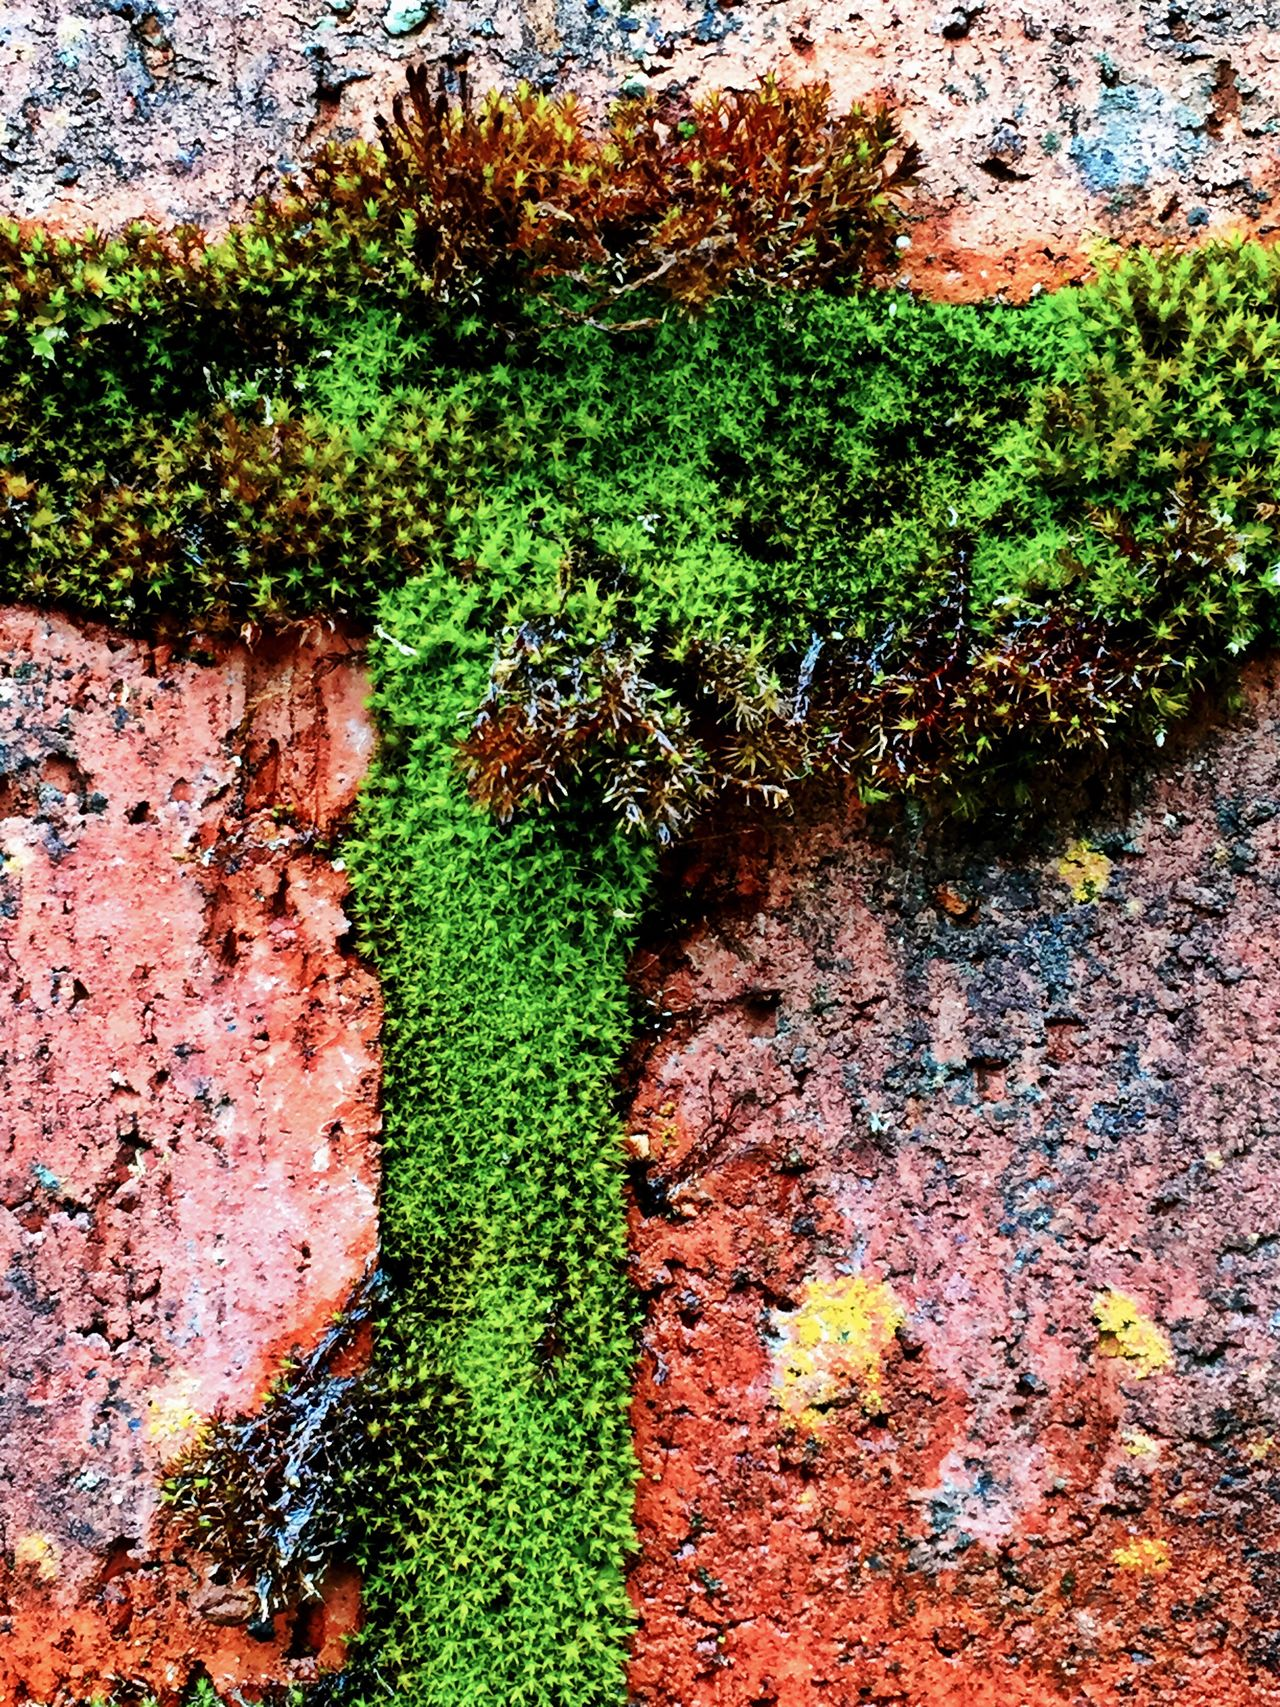 Green Color Growth Day Moss No People Plant Outdoors Nature Ivy Lichen Textured  Algae Full Frame Backgrounds Tree Close-up Leaf Fungus